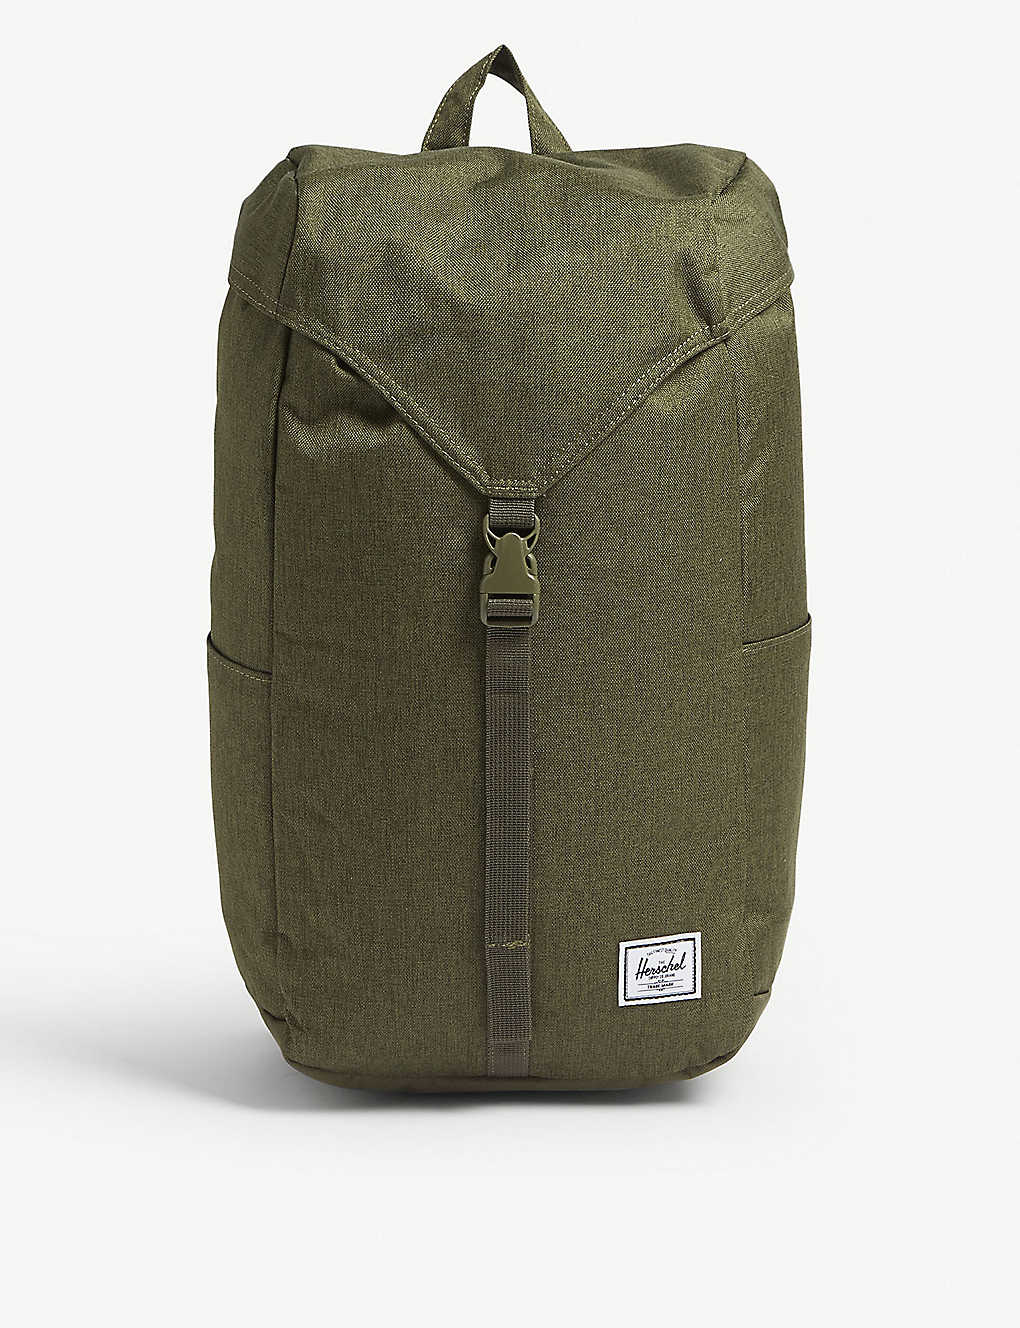 327e07c9f7 HERSCHEL SUPPLY CO - Thompson backpack